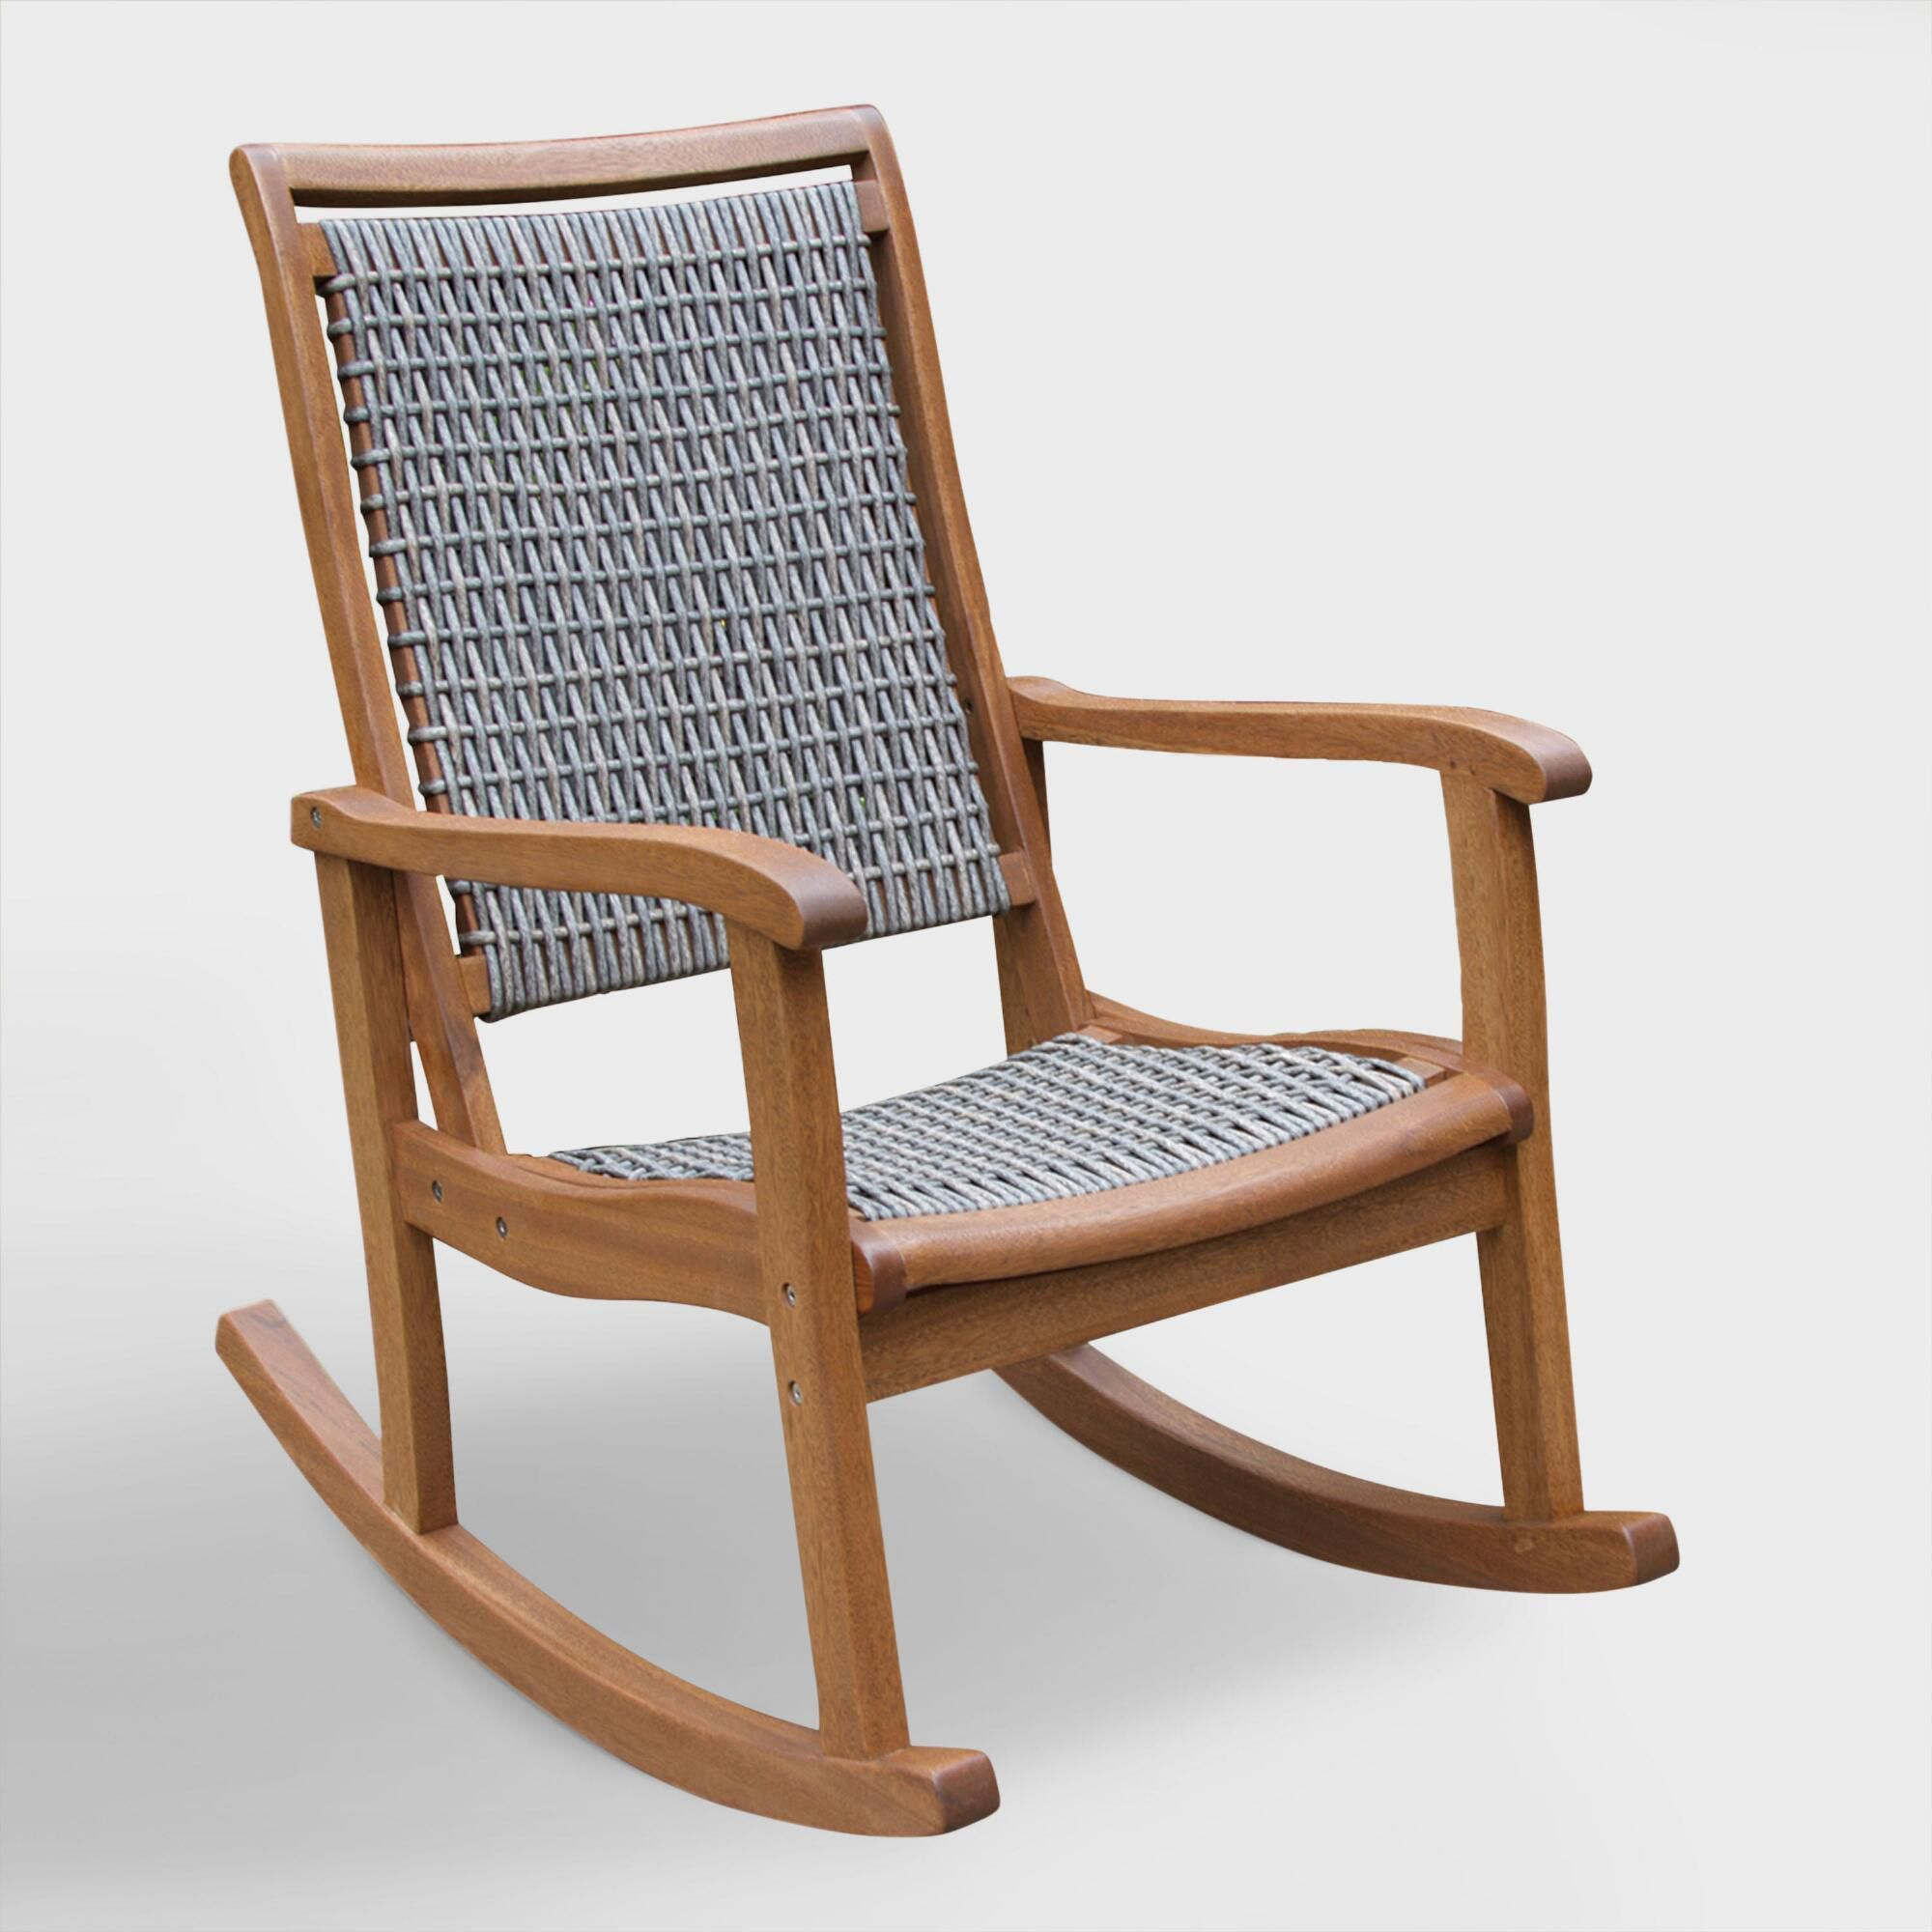 15 Stylish Outdoor Rocking Chairs You Ll Want To Lounge In All